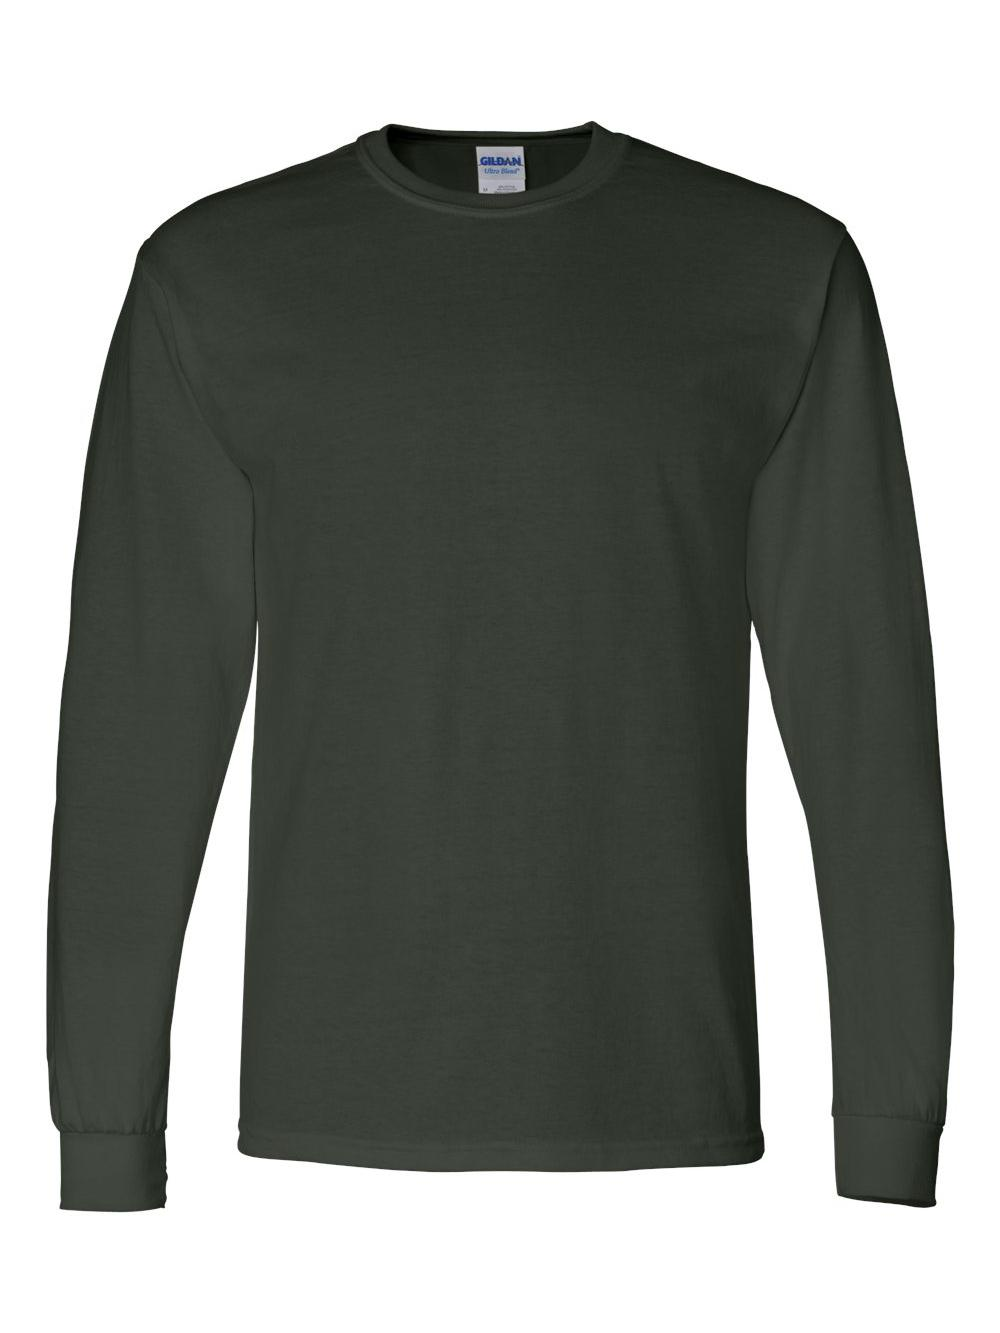 Gildan-DryBlend-50-50-Long-Sleeve-T-Shirt-8400 thumbnail 15